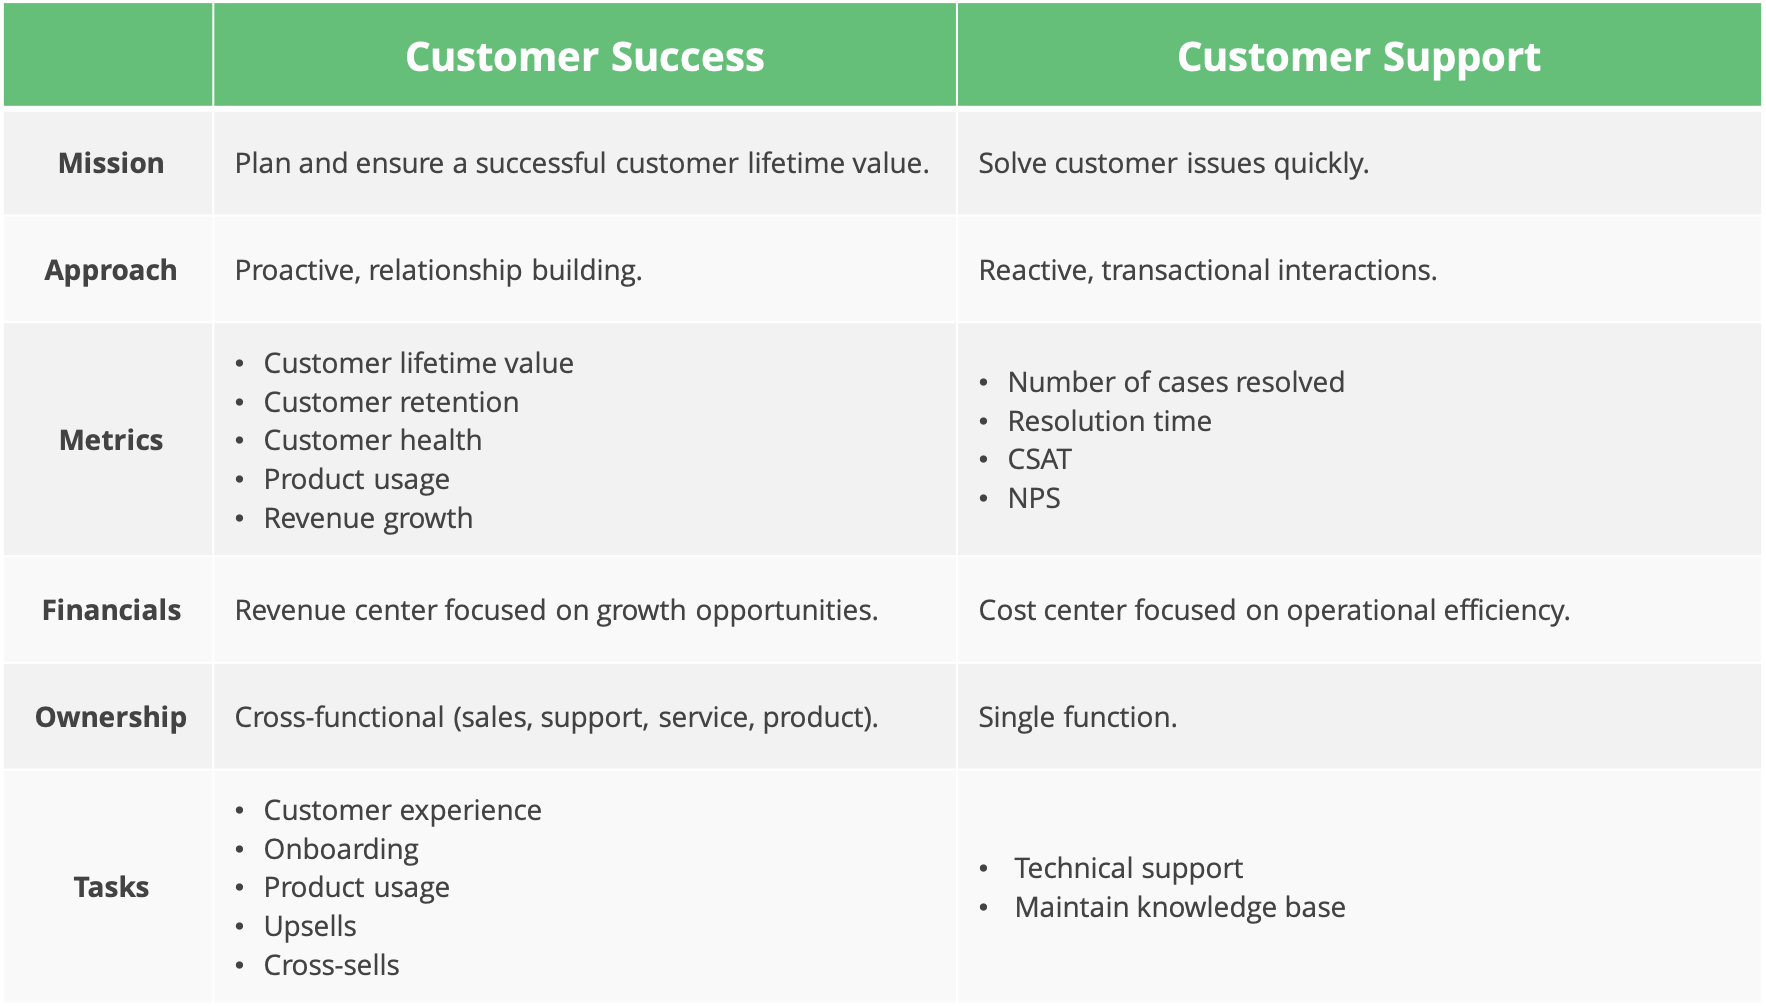 Difference between customer success and customer support